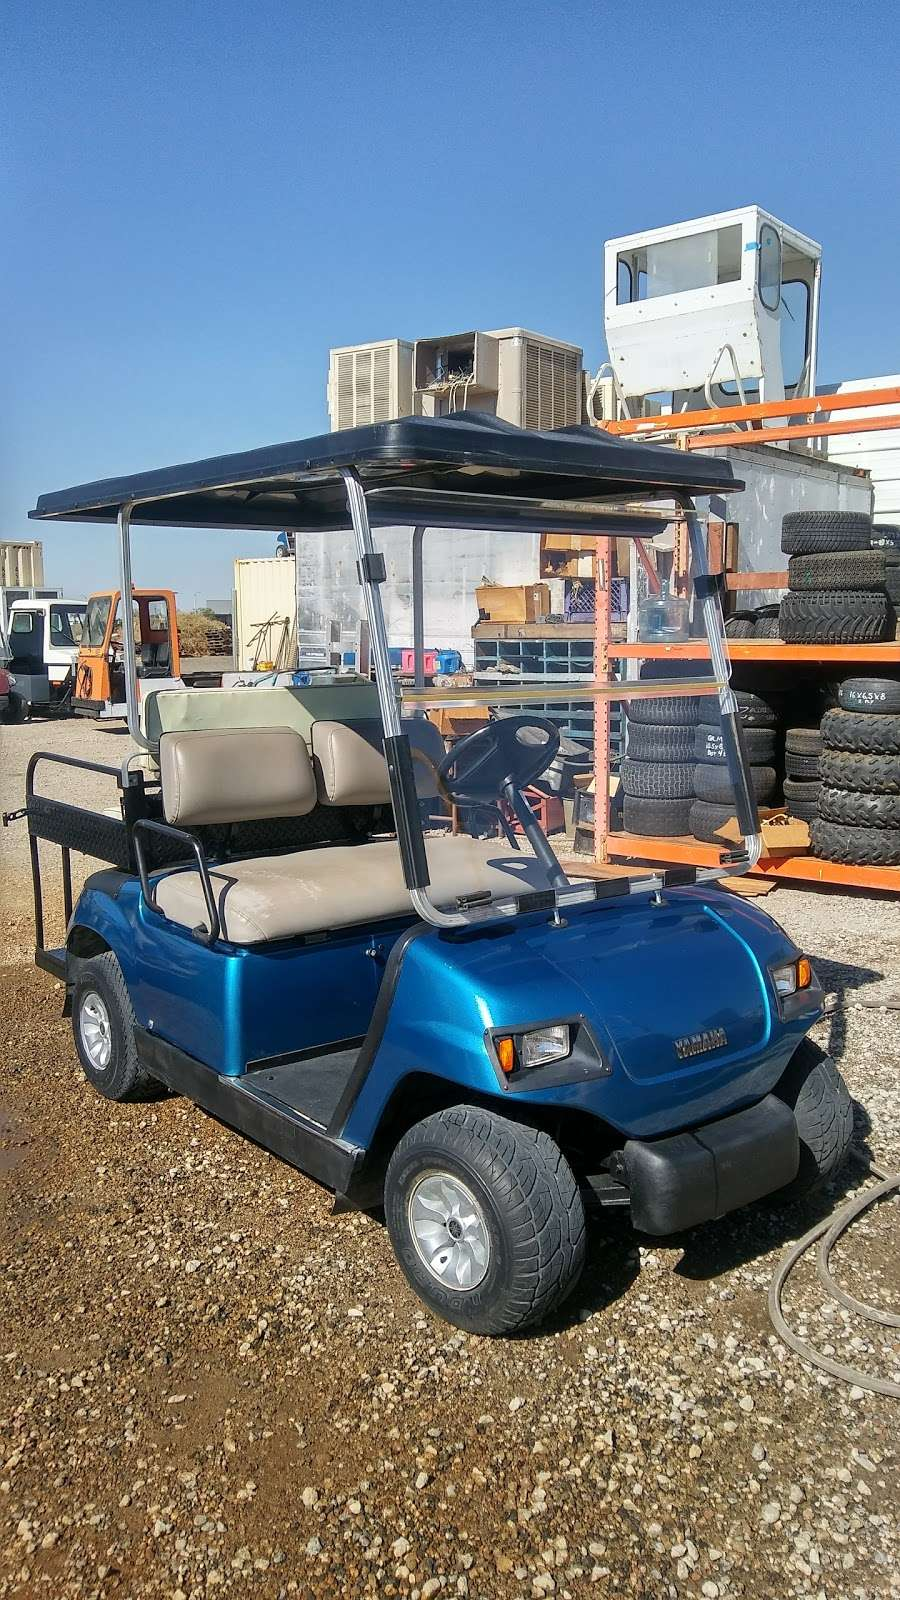 AV Golf Carts - store  | Photo 1 of 10 | Address: 231 W Ave L 8, Lancaster, CA 93534, USA | Phone: (661) 951-0454